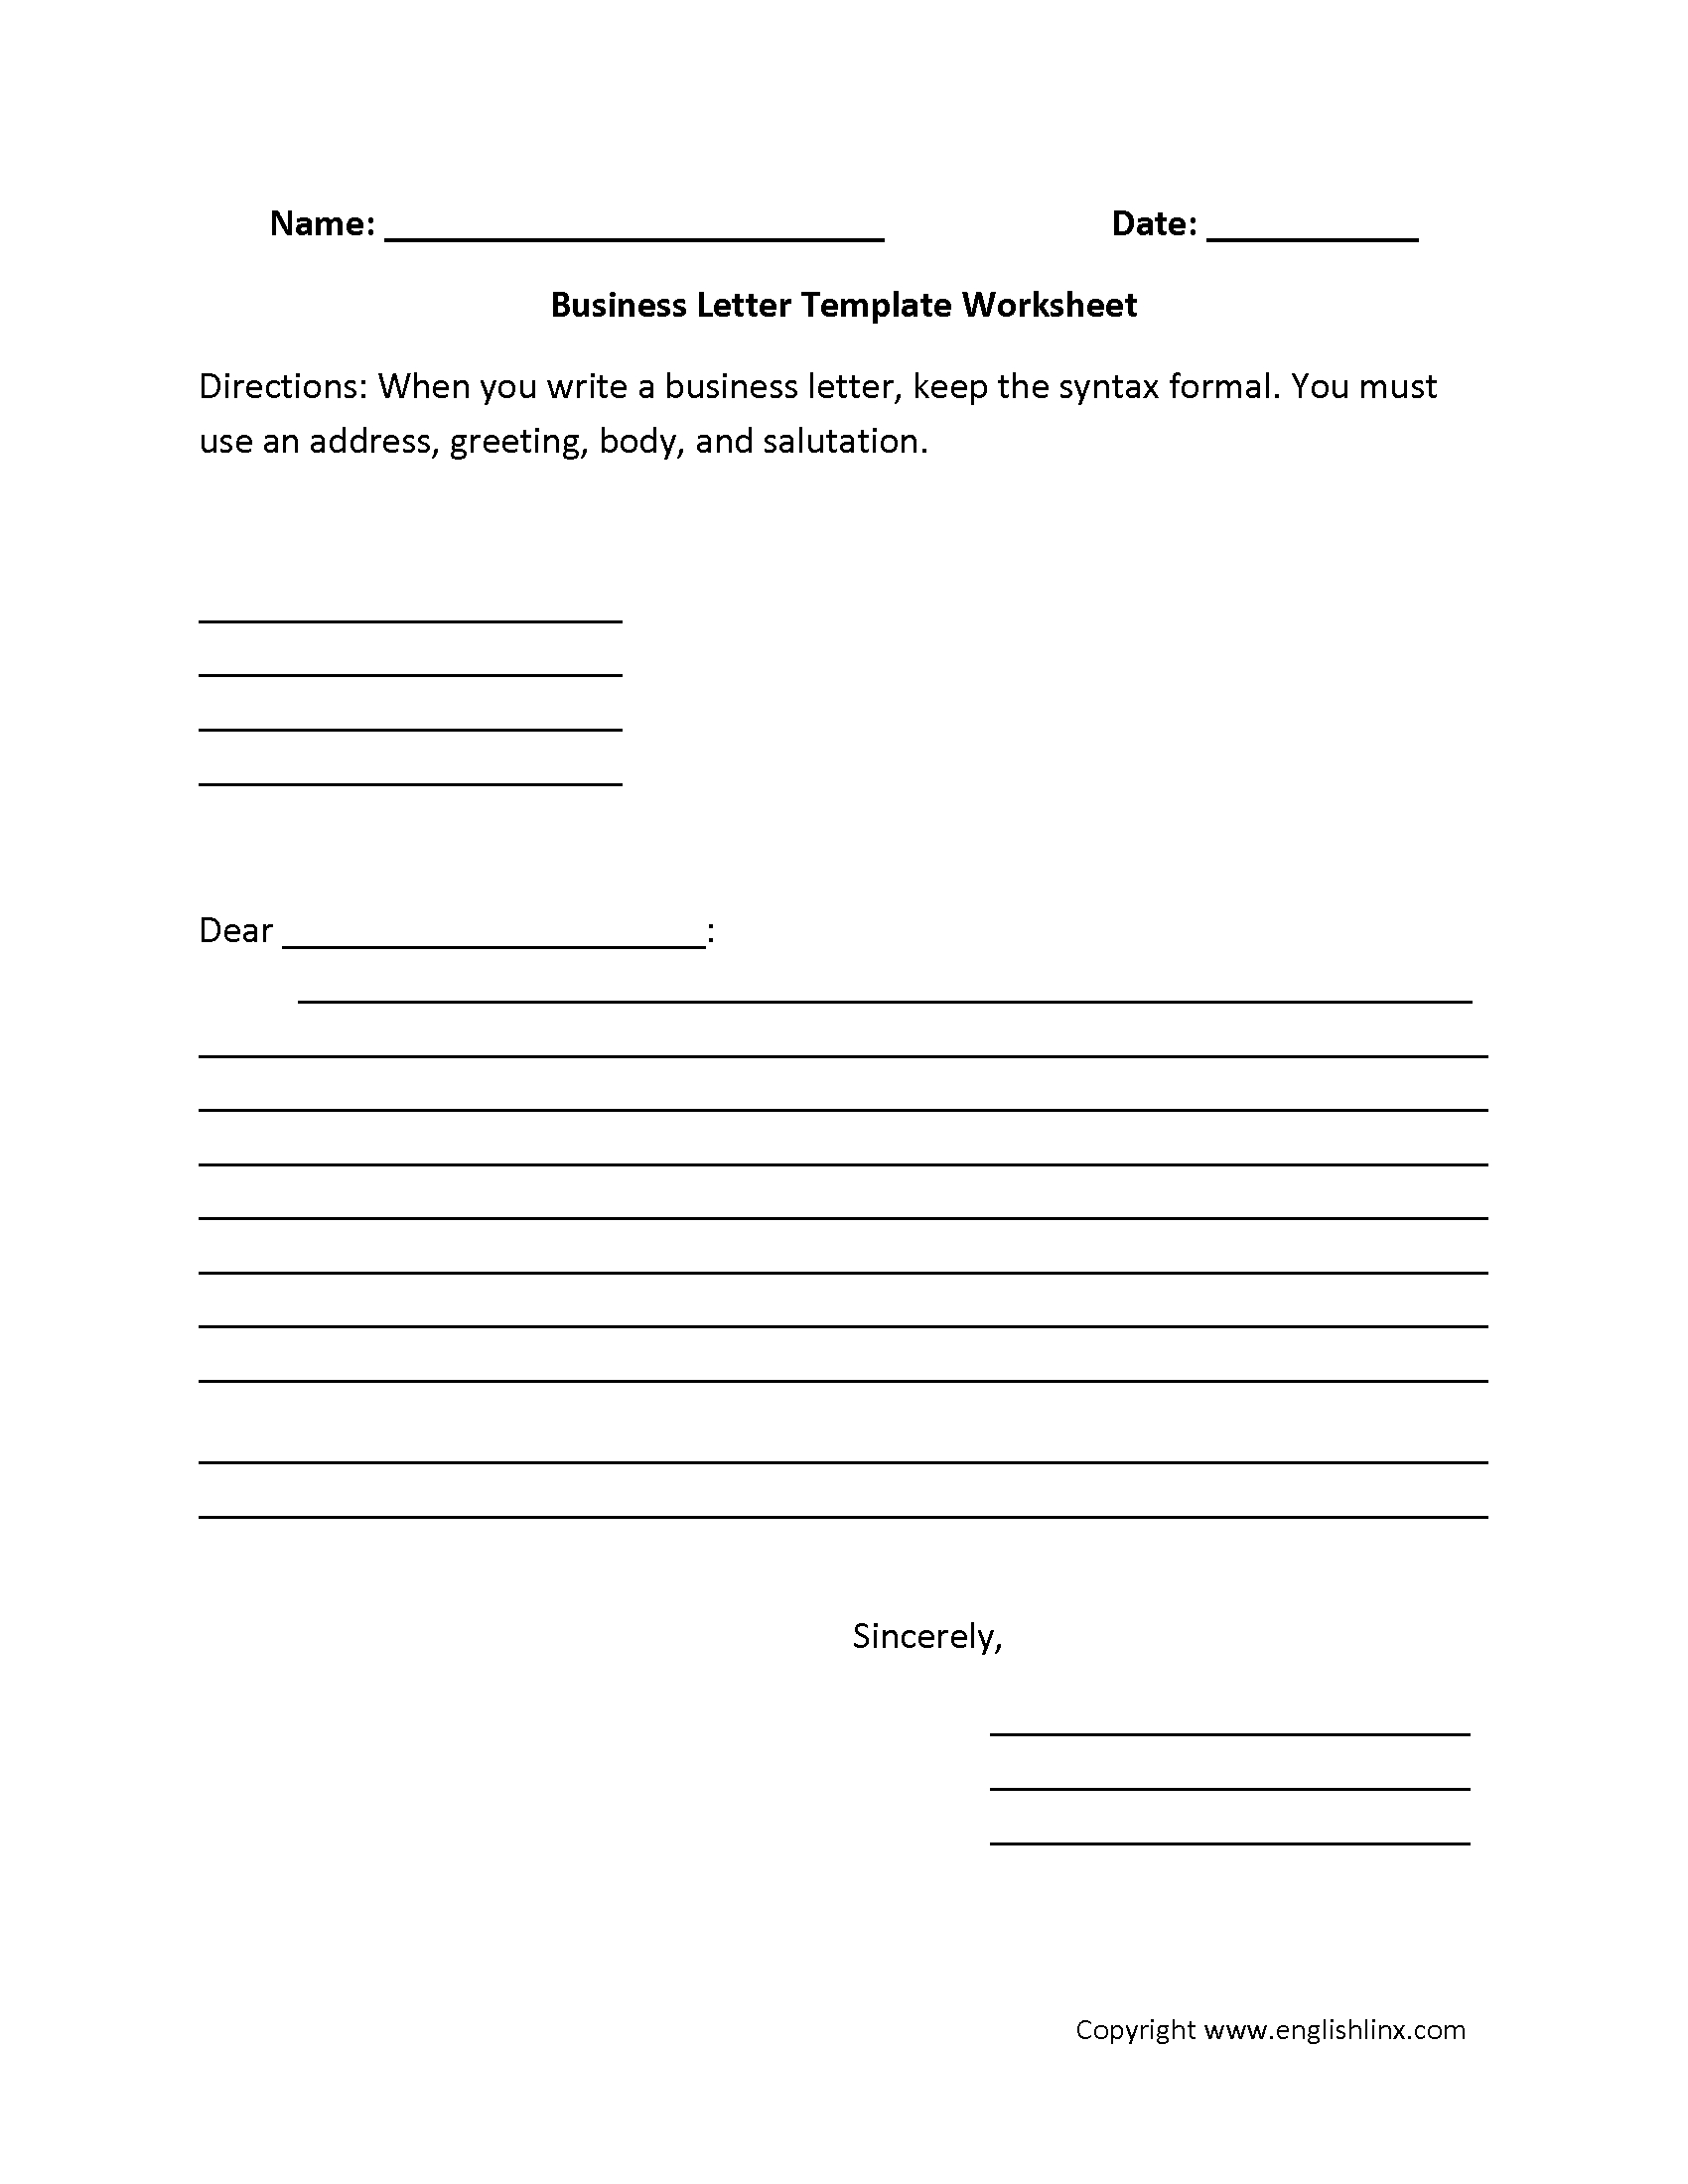 Letter Writing Worksheets For Grade 5